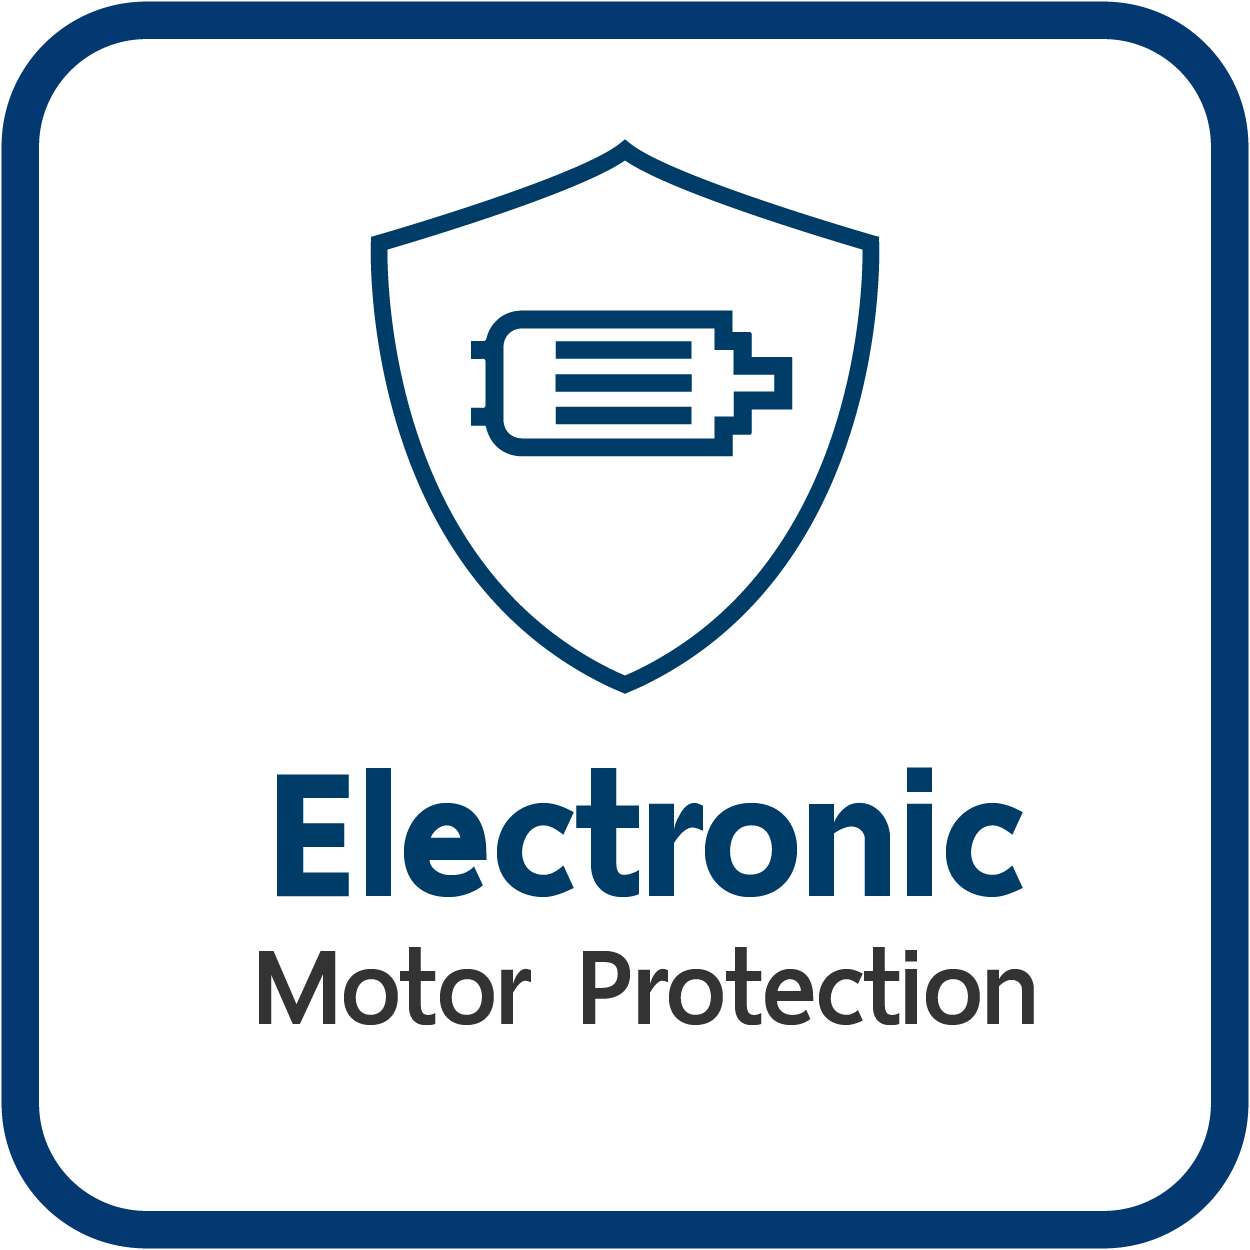 Electronic Motor Protection